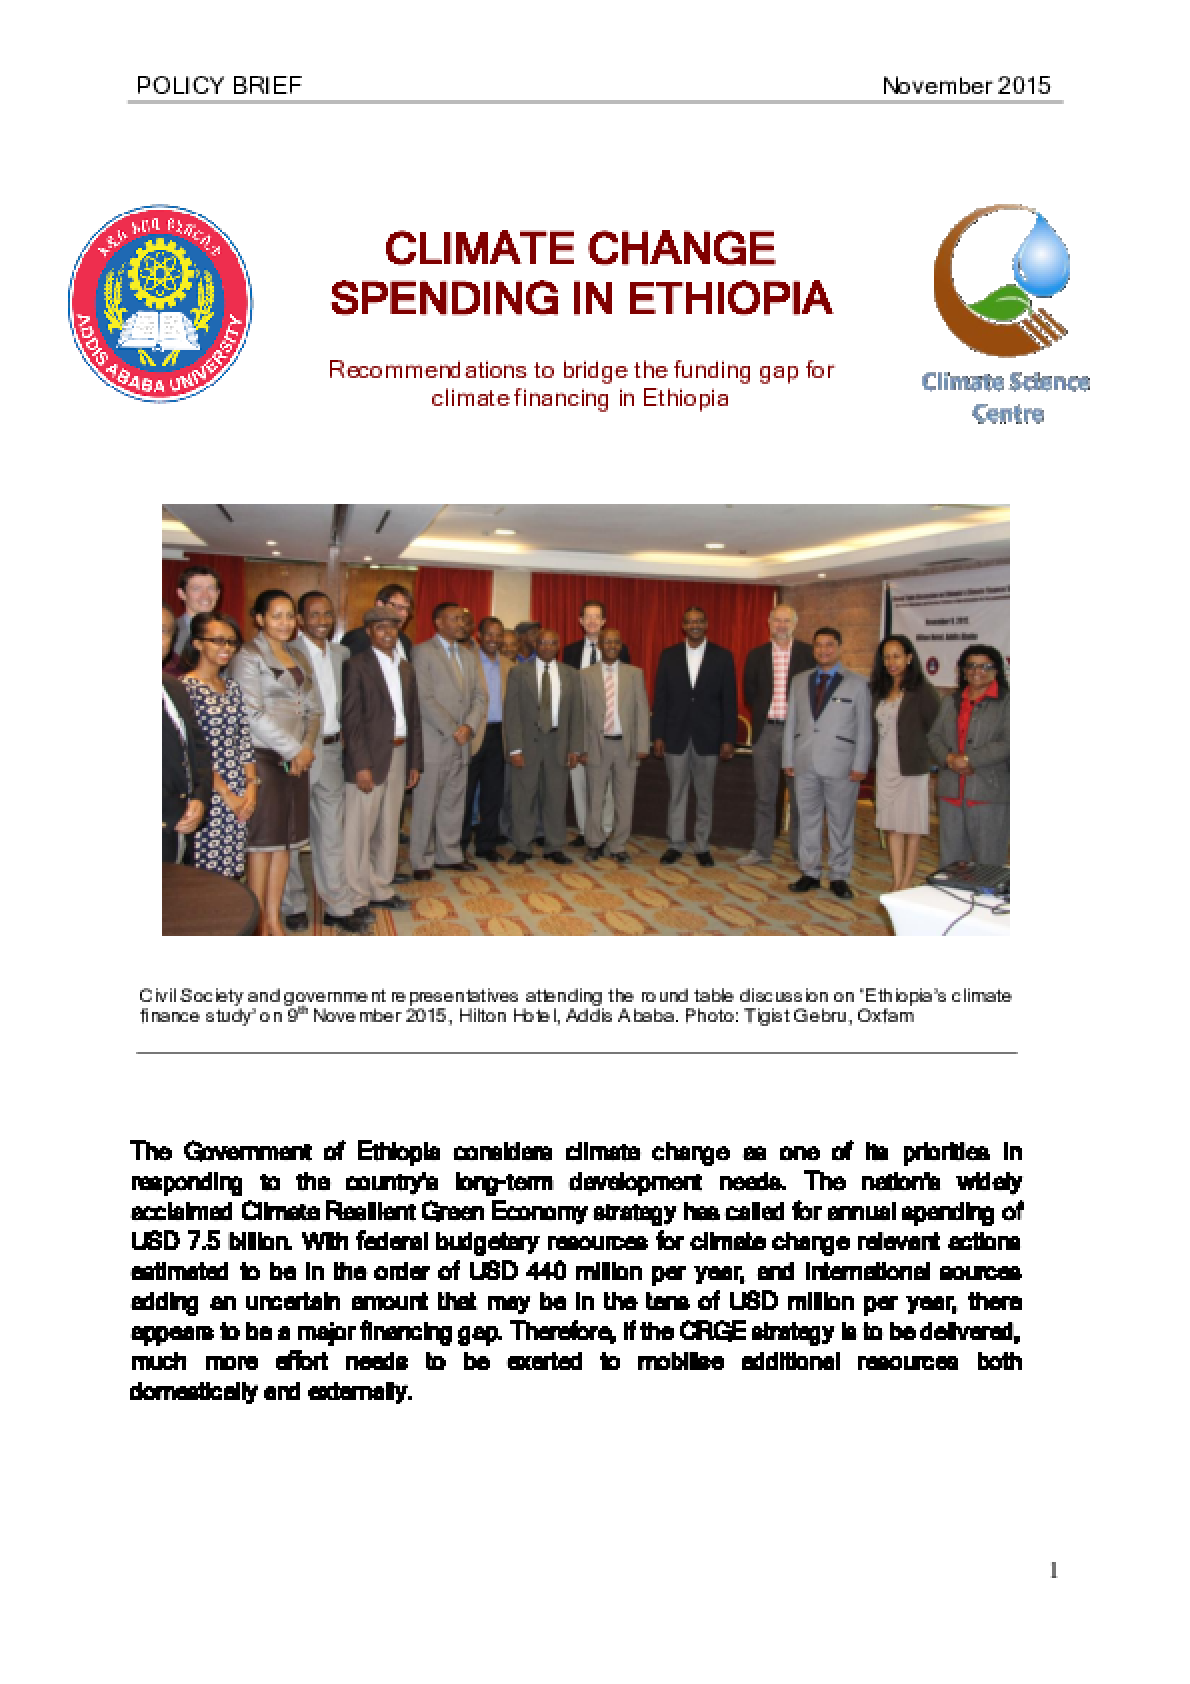 Climate Change Spending in Ethiopia: Recommendations to bridge the funding gap for climate financing